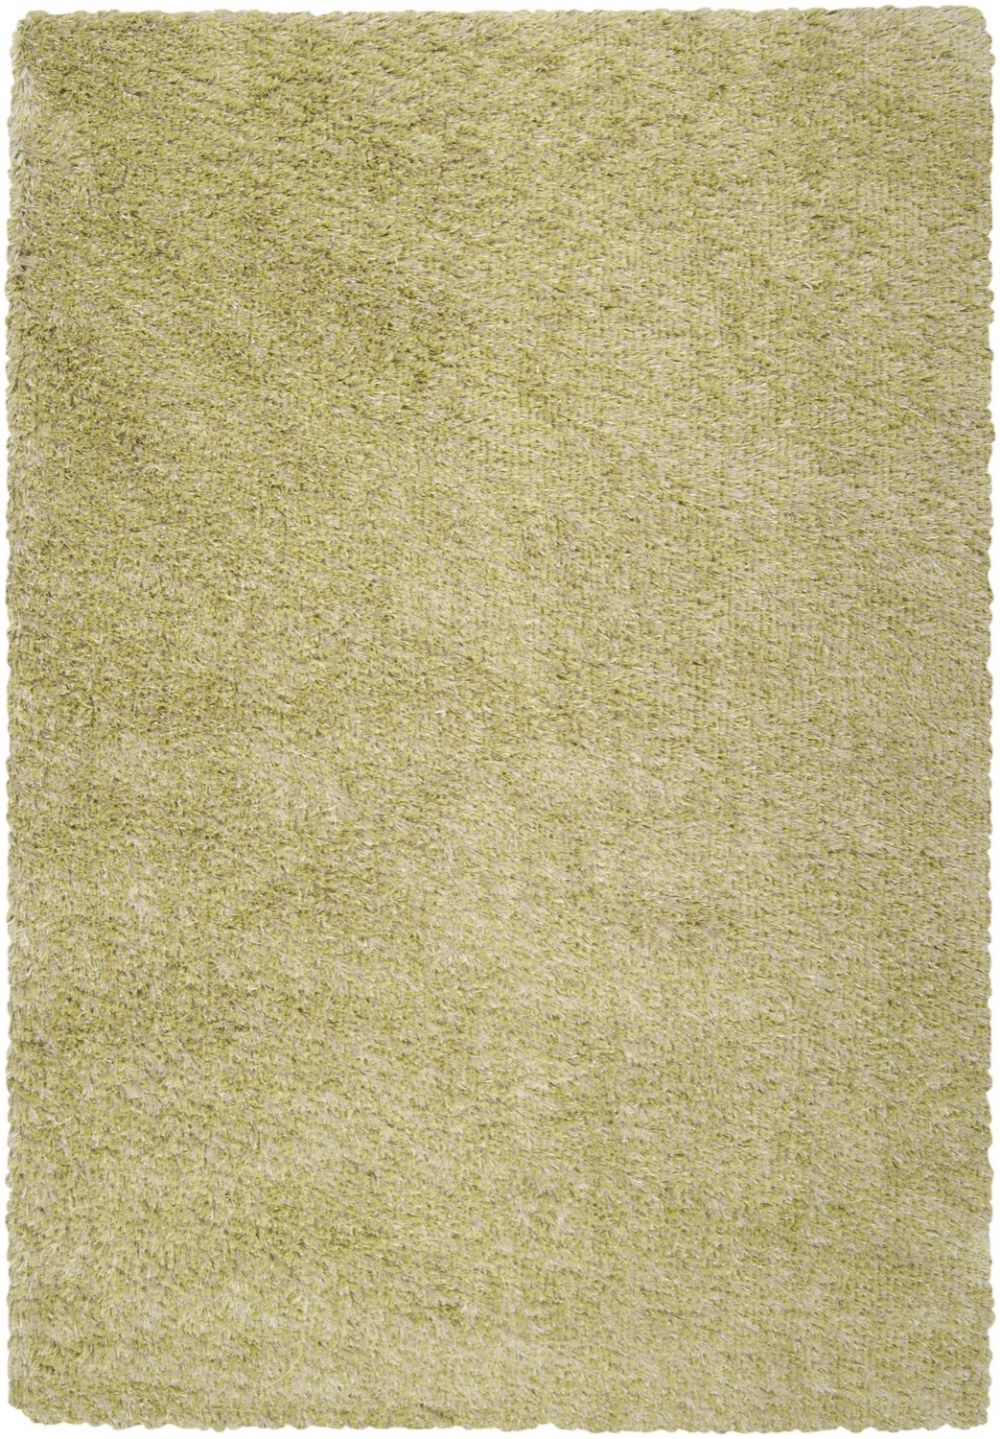 surya mink shags plush area rug collection